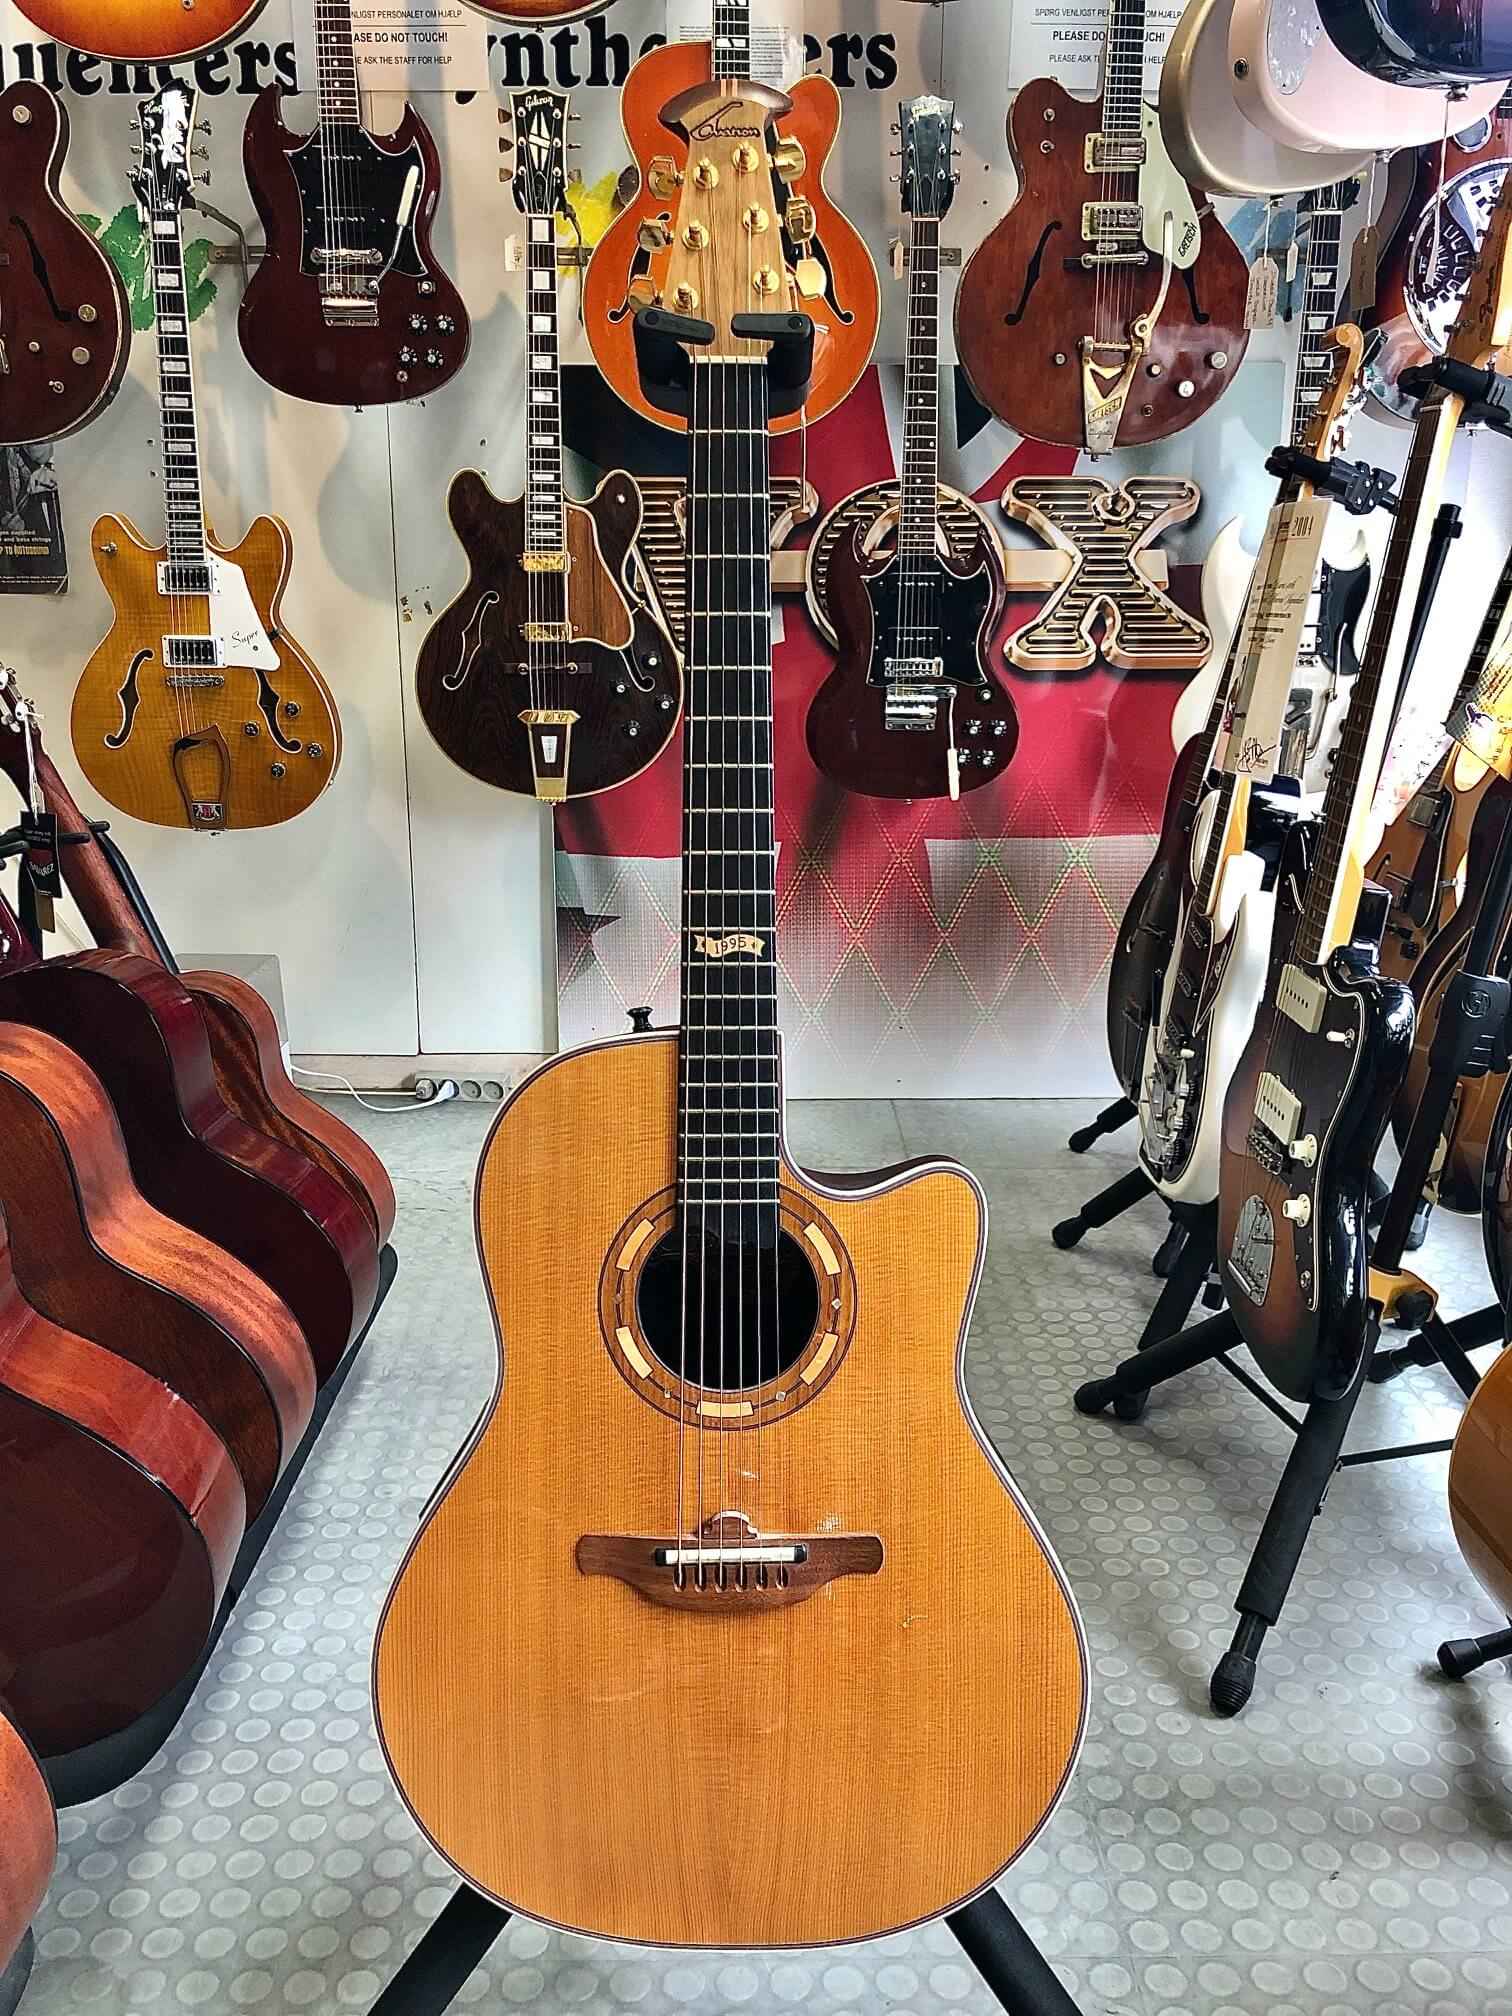 Ovation '95 Collectors Series